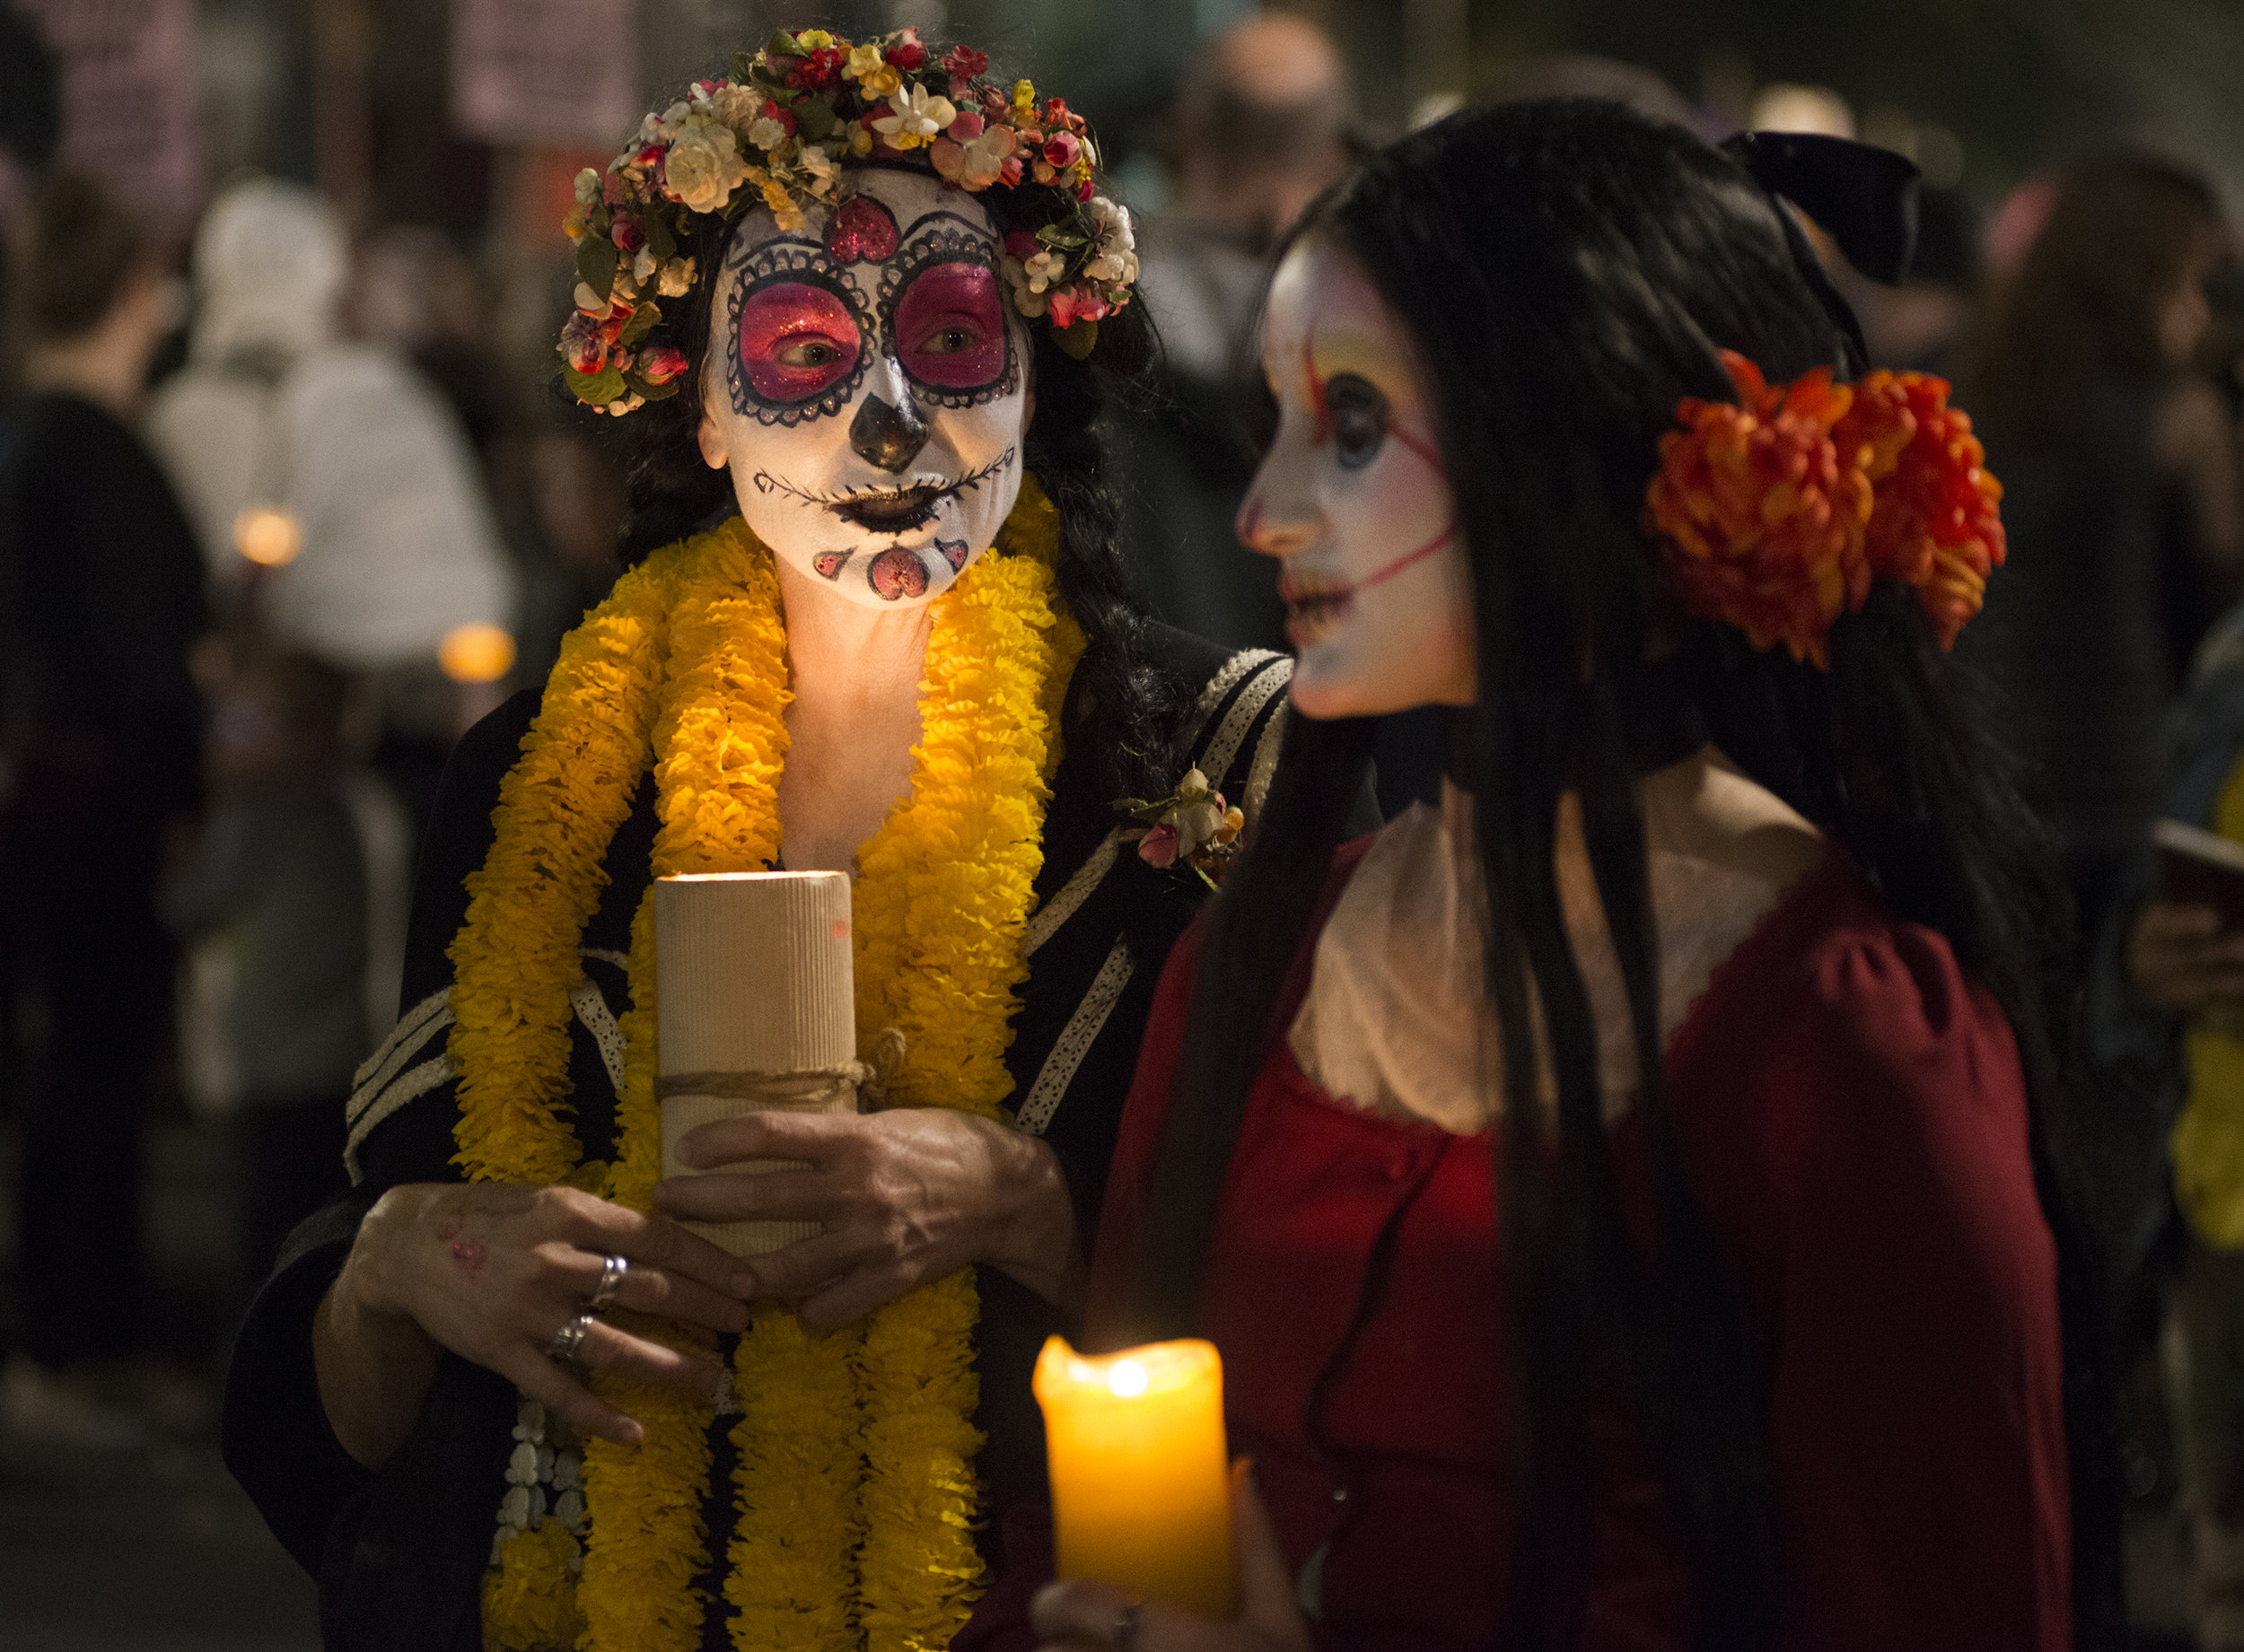 Wendy Testu, left, and Lolita Testu hold candles during the annual Dia De los Muertos procession in the Mission district in San Francisco, Ca. on Friday, November 2, 2018. Photo by David Andrews.  See more here .